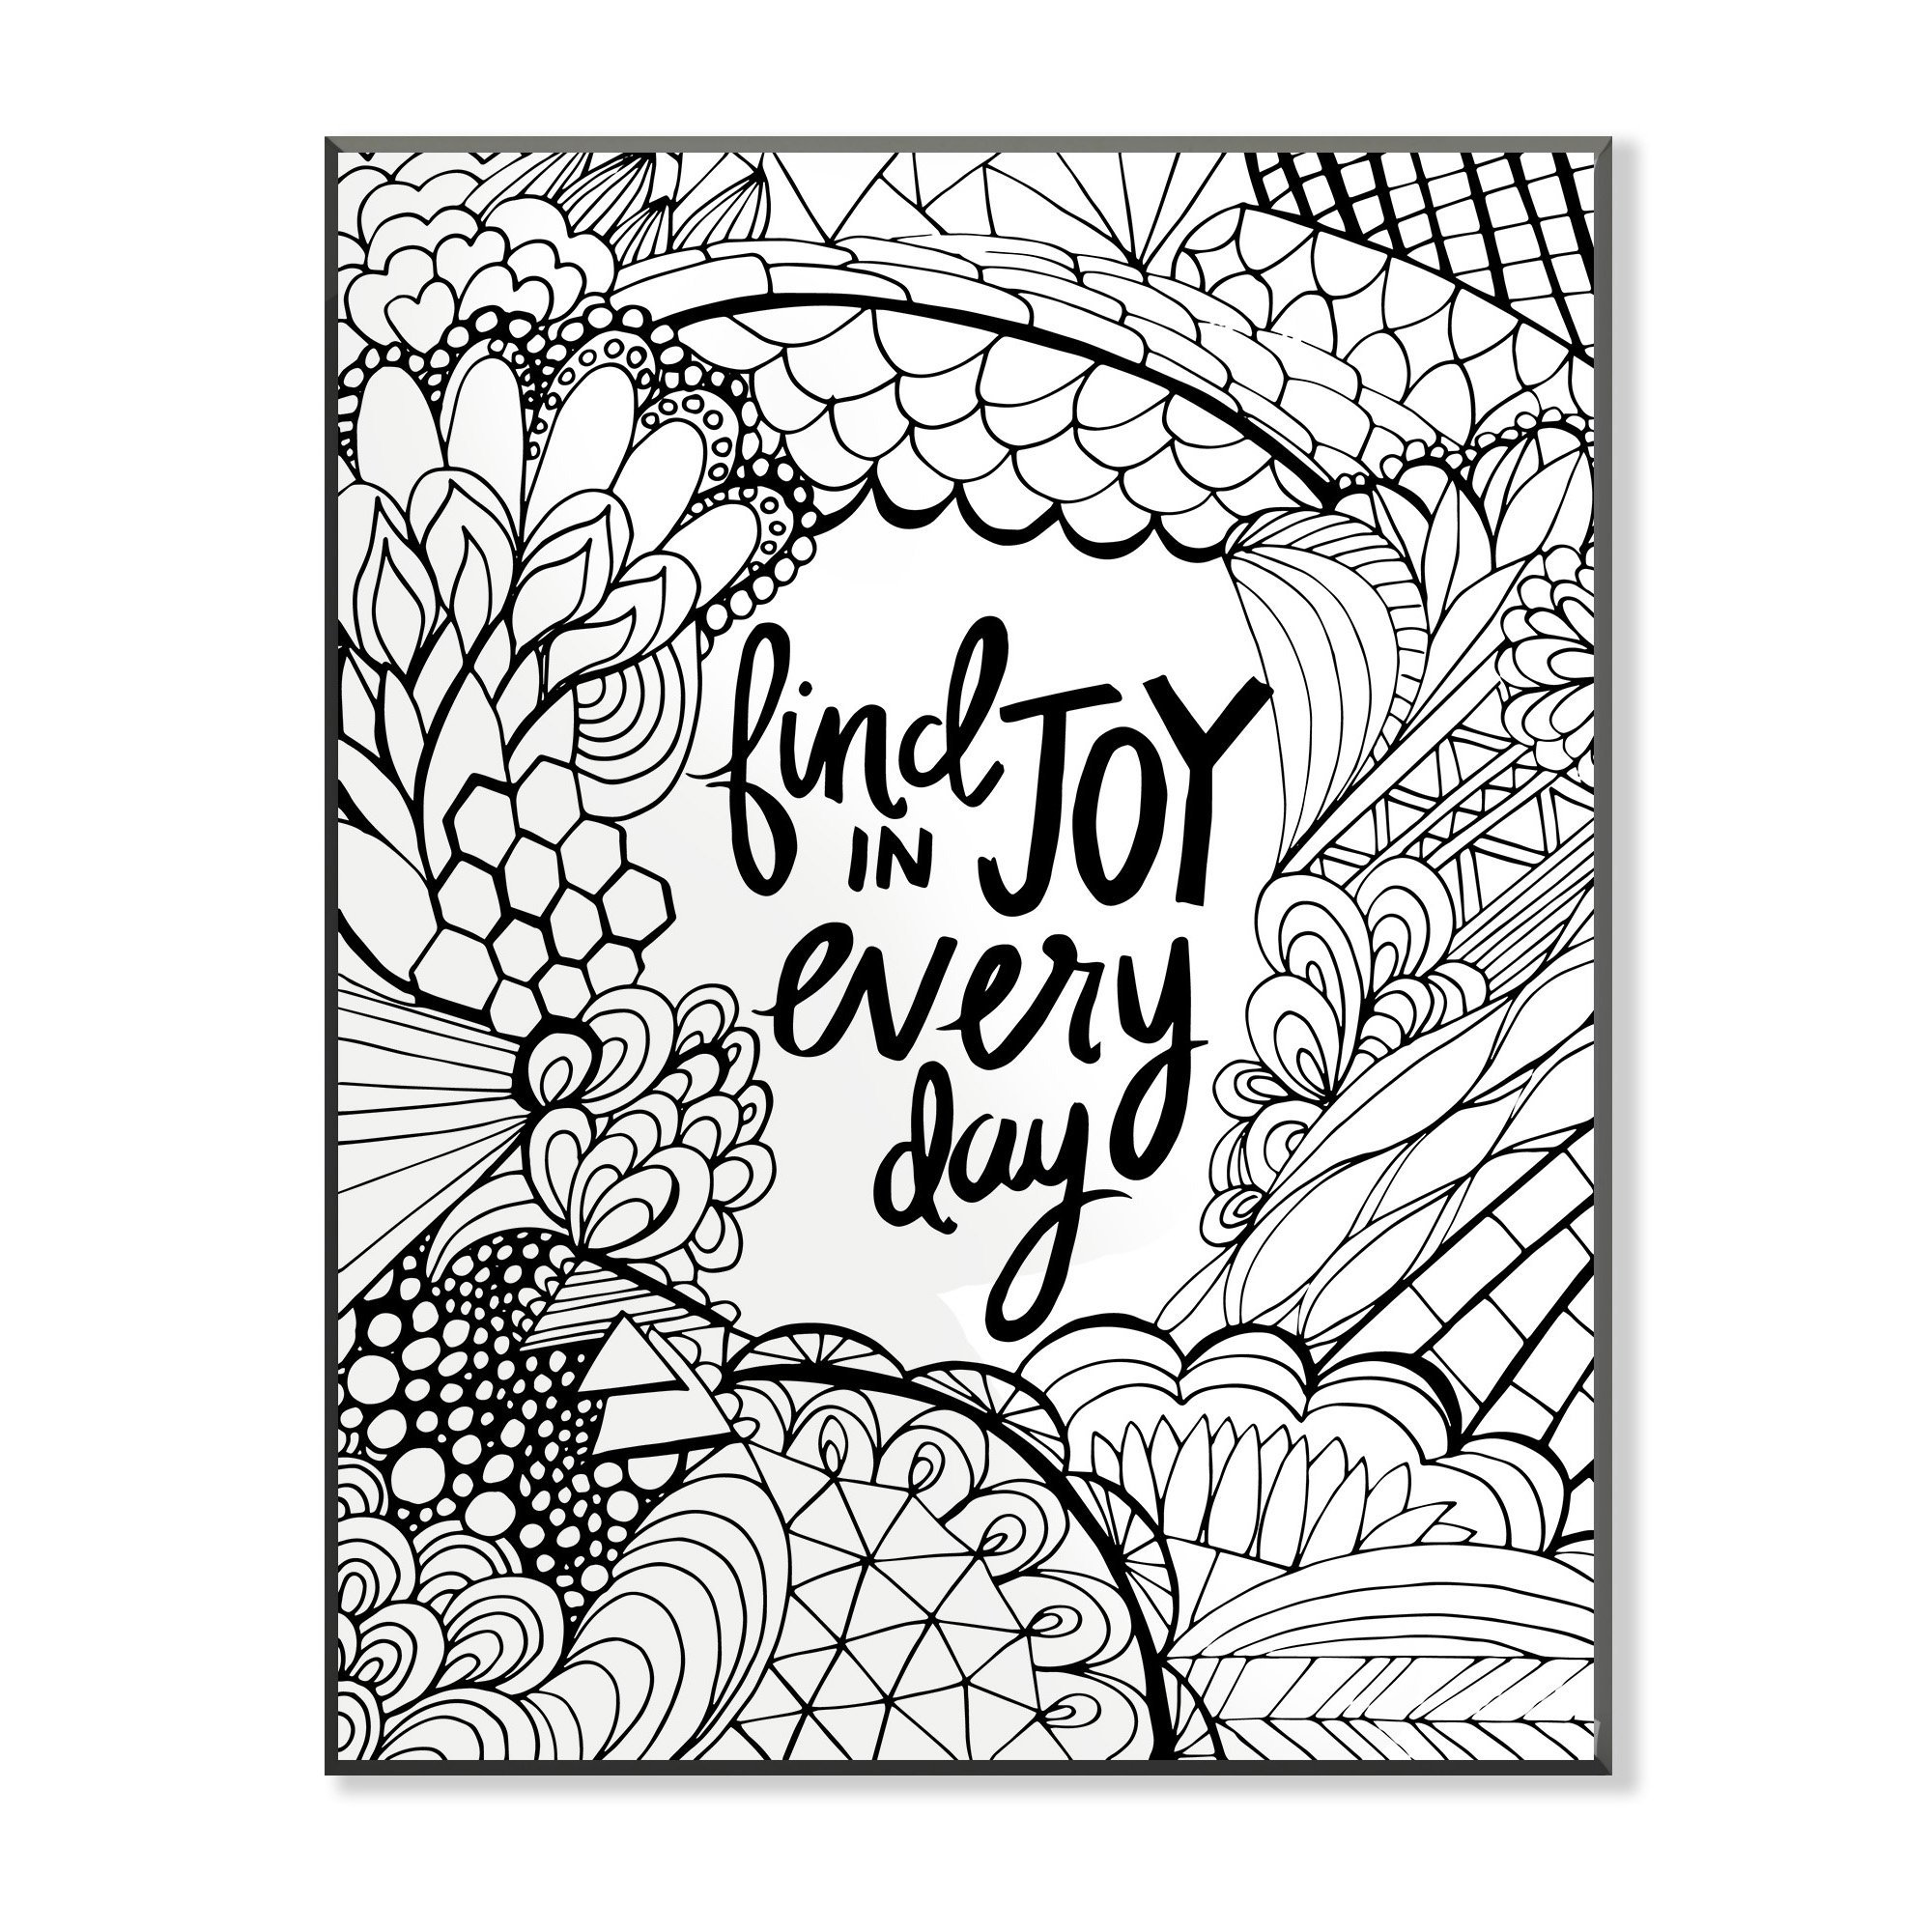 The Stupell Home Decor Collection Find Joy In Every Day DIY Coloring Wall Plaque by The Stupell Home Decor Collection